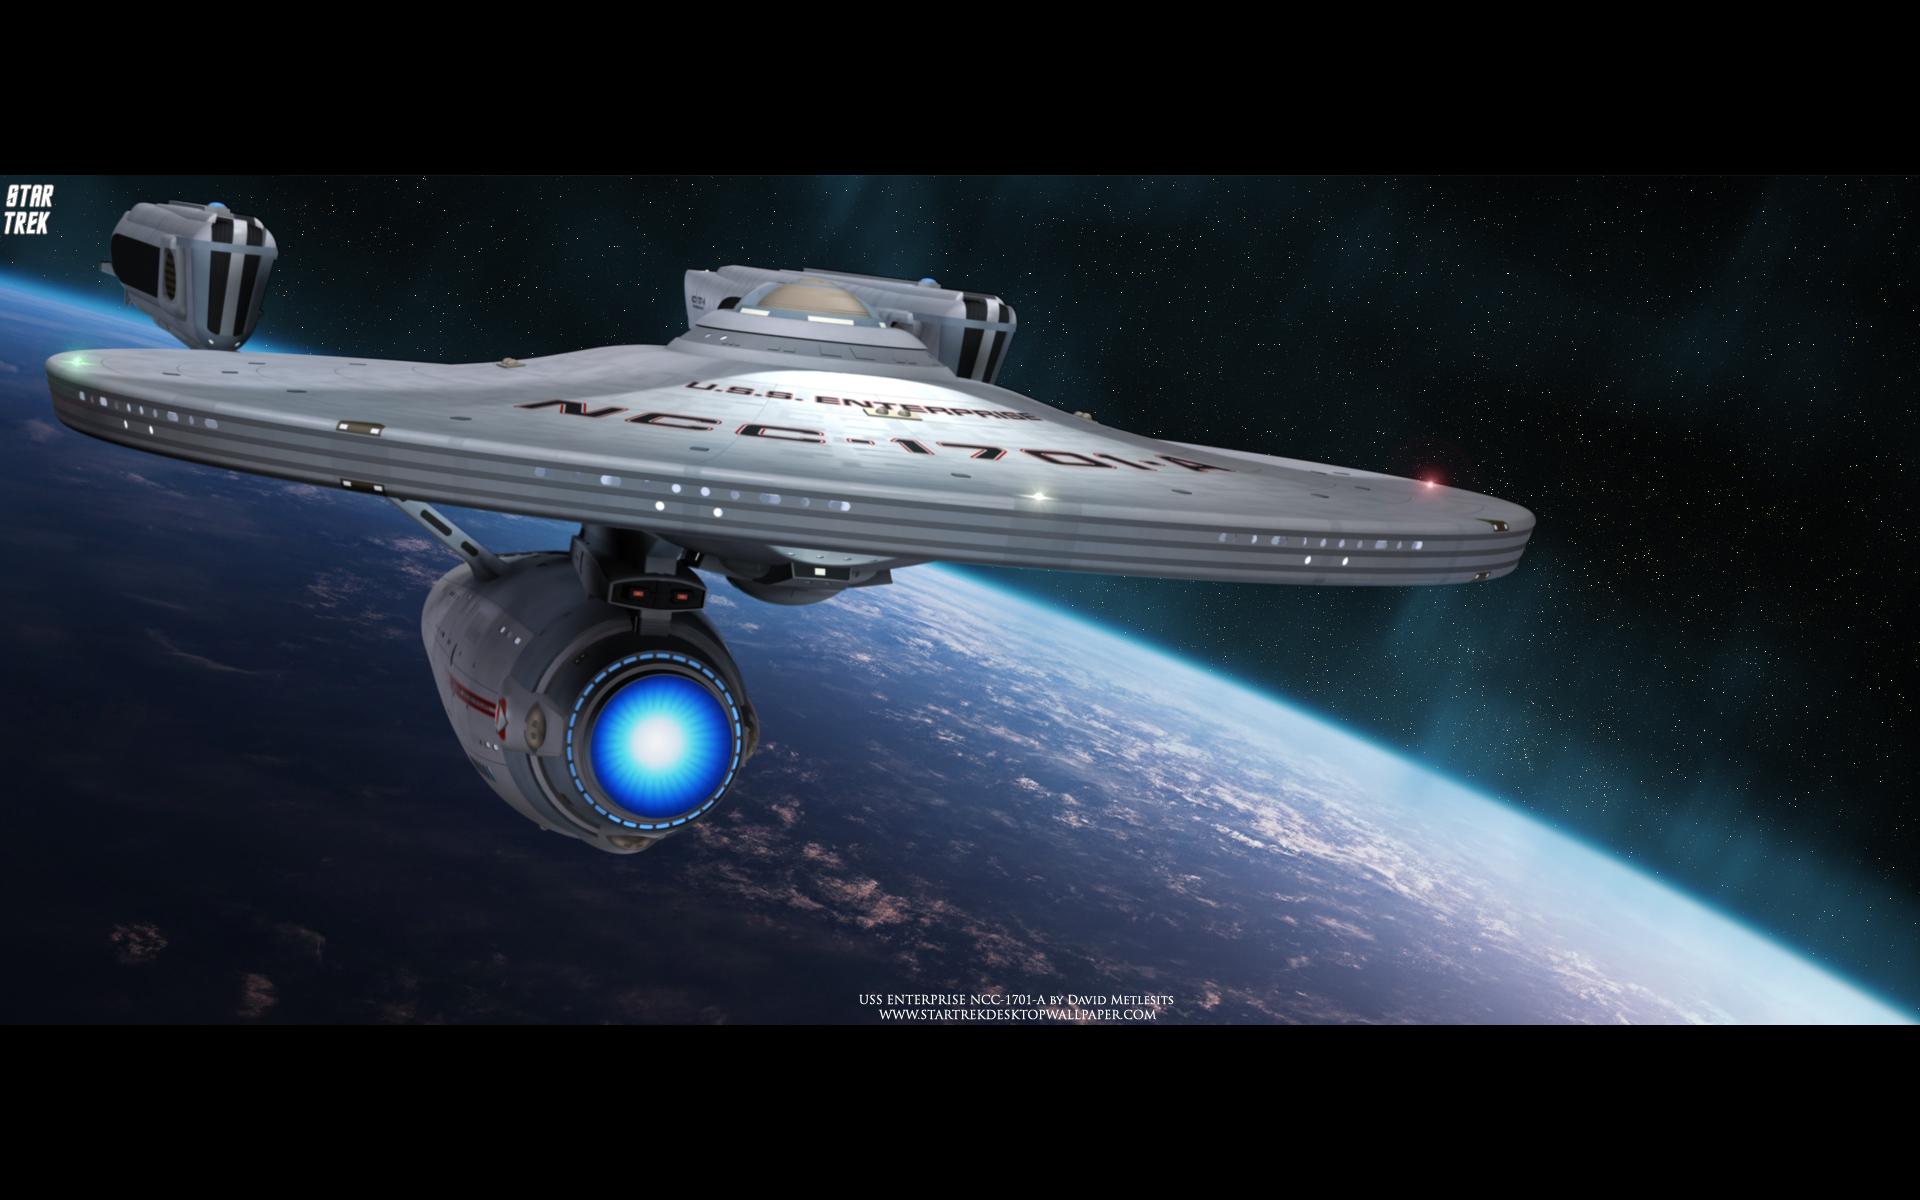 [48+] USS Enterprise NCC 1701 Wallpaper On WallpaperSafari